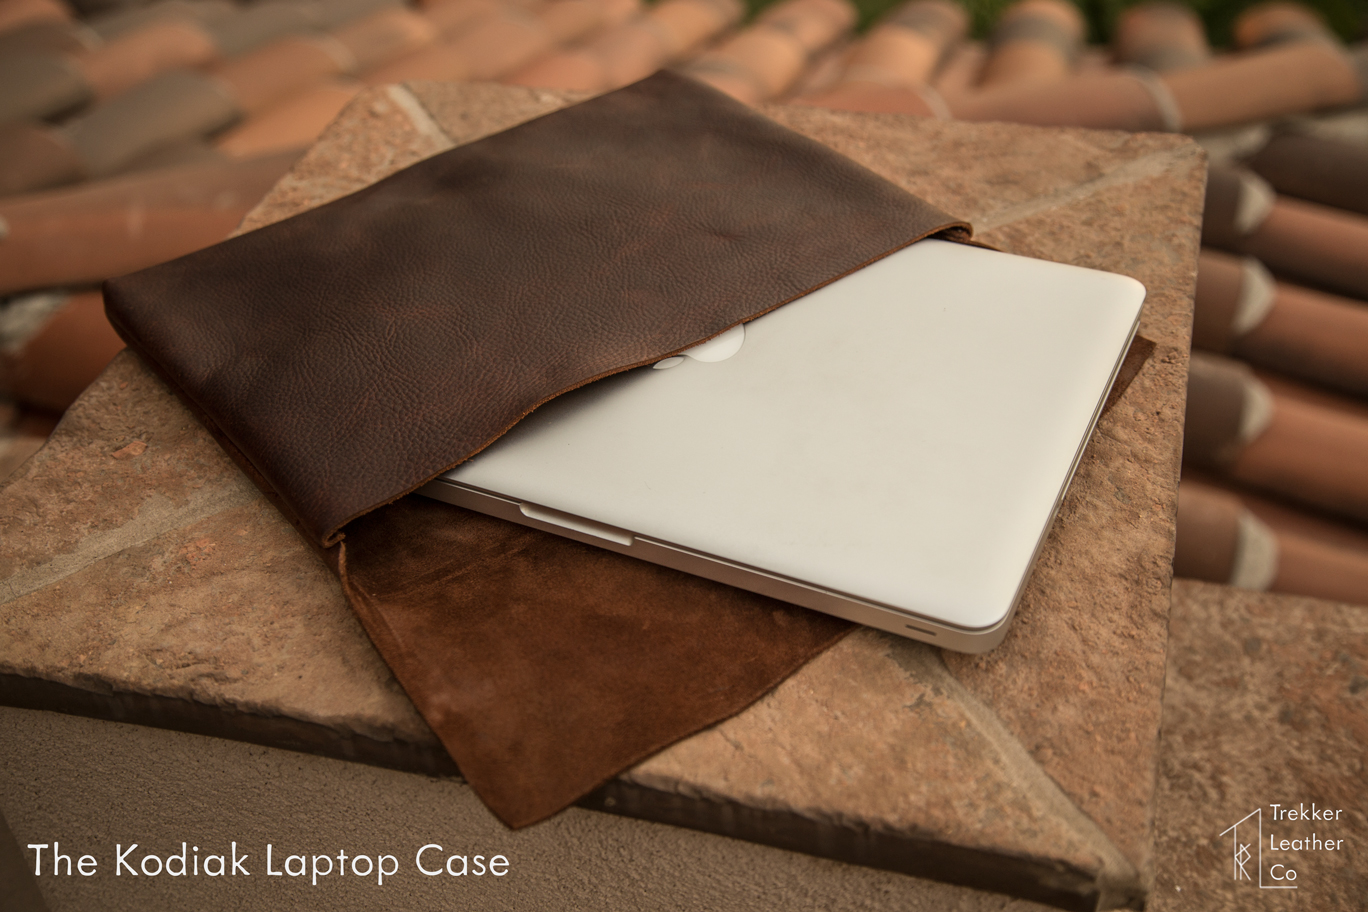 The Kodiak Leather Laptop sleeve is designed to fit a 13